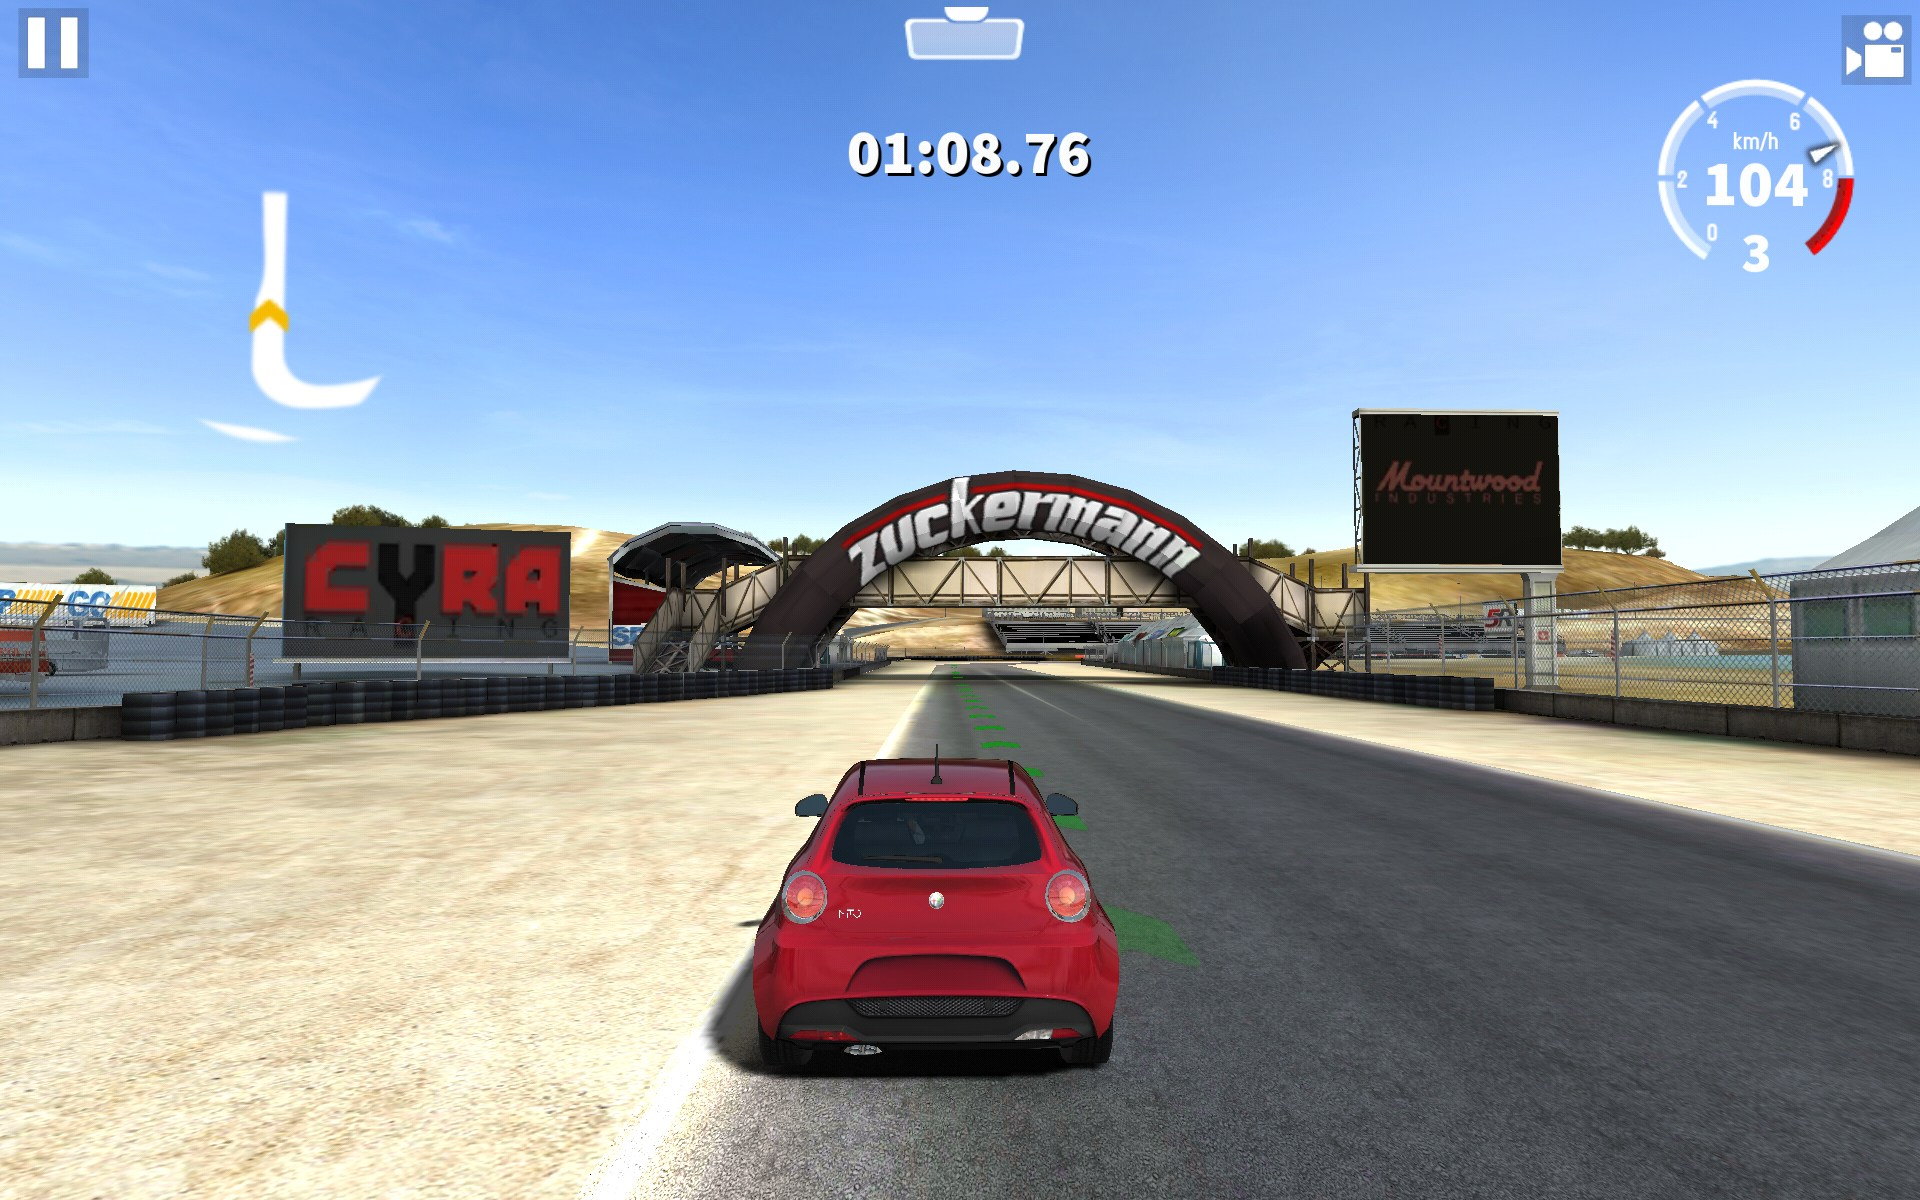 Gt racing 2 the real car exp for samsung gt i9500 galaxy s4